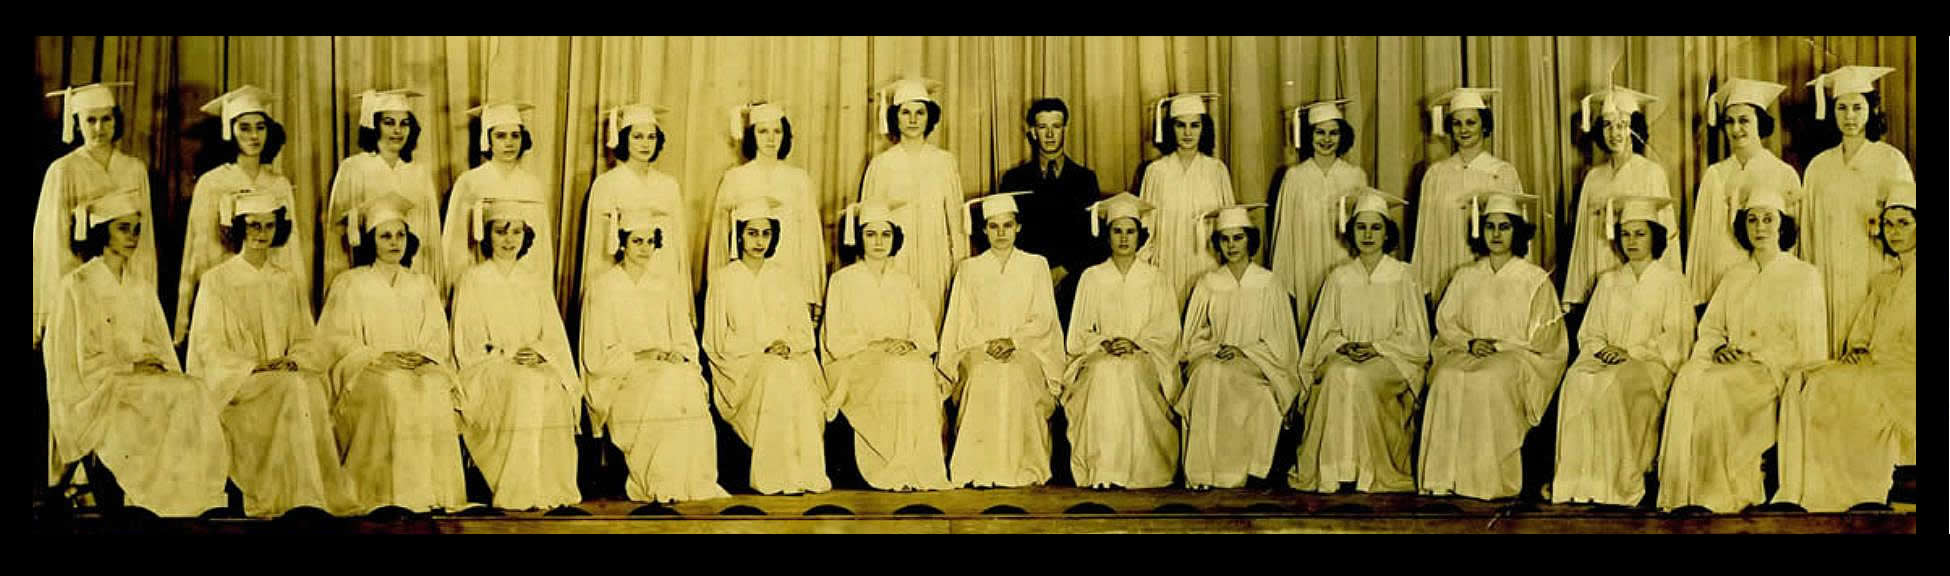 St. Mary of the Pines, Chatawa, MS - class of 1941 (note the one male graduate)